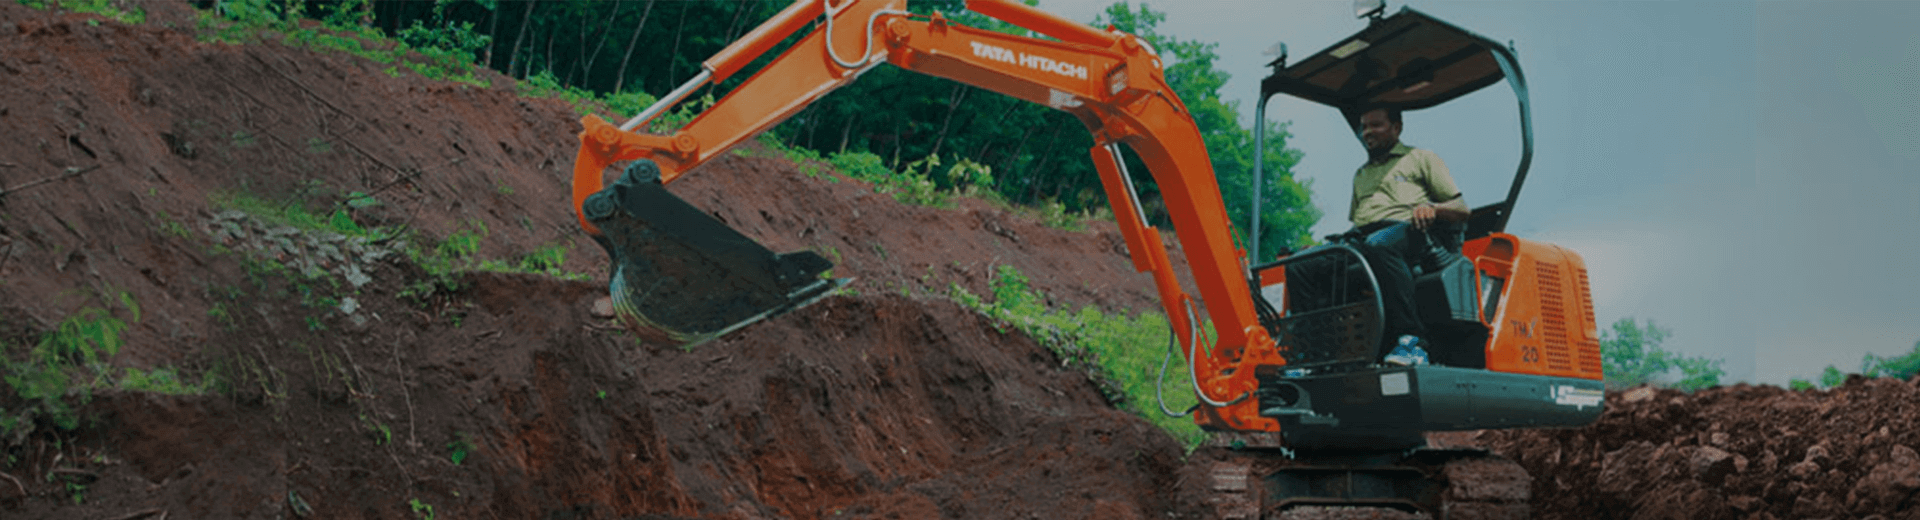 Mini Diggers with Superior Digging Forces | Tata Hitachi